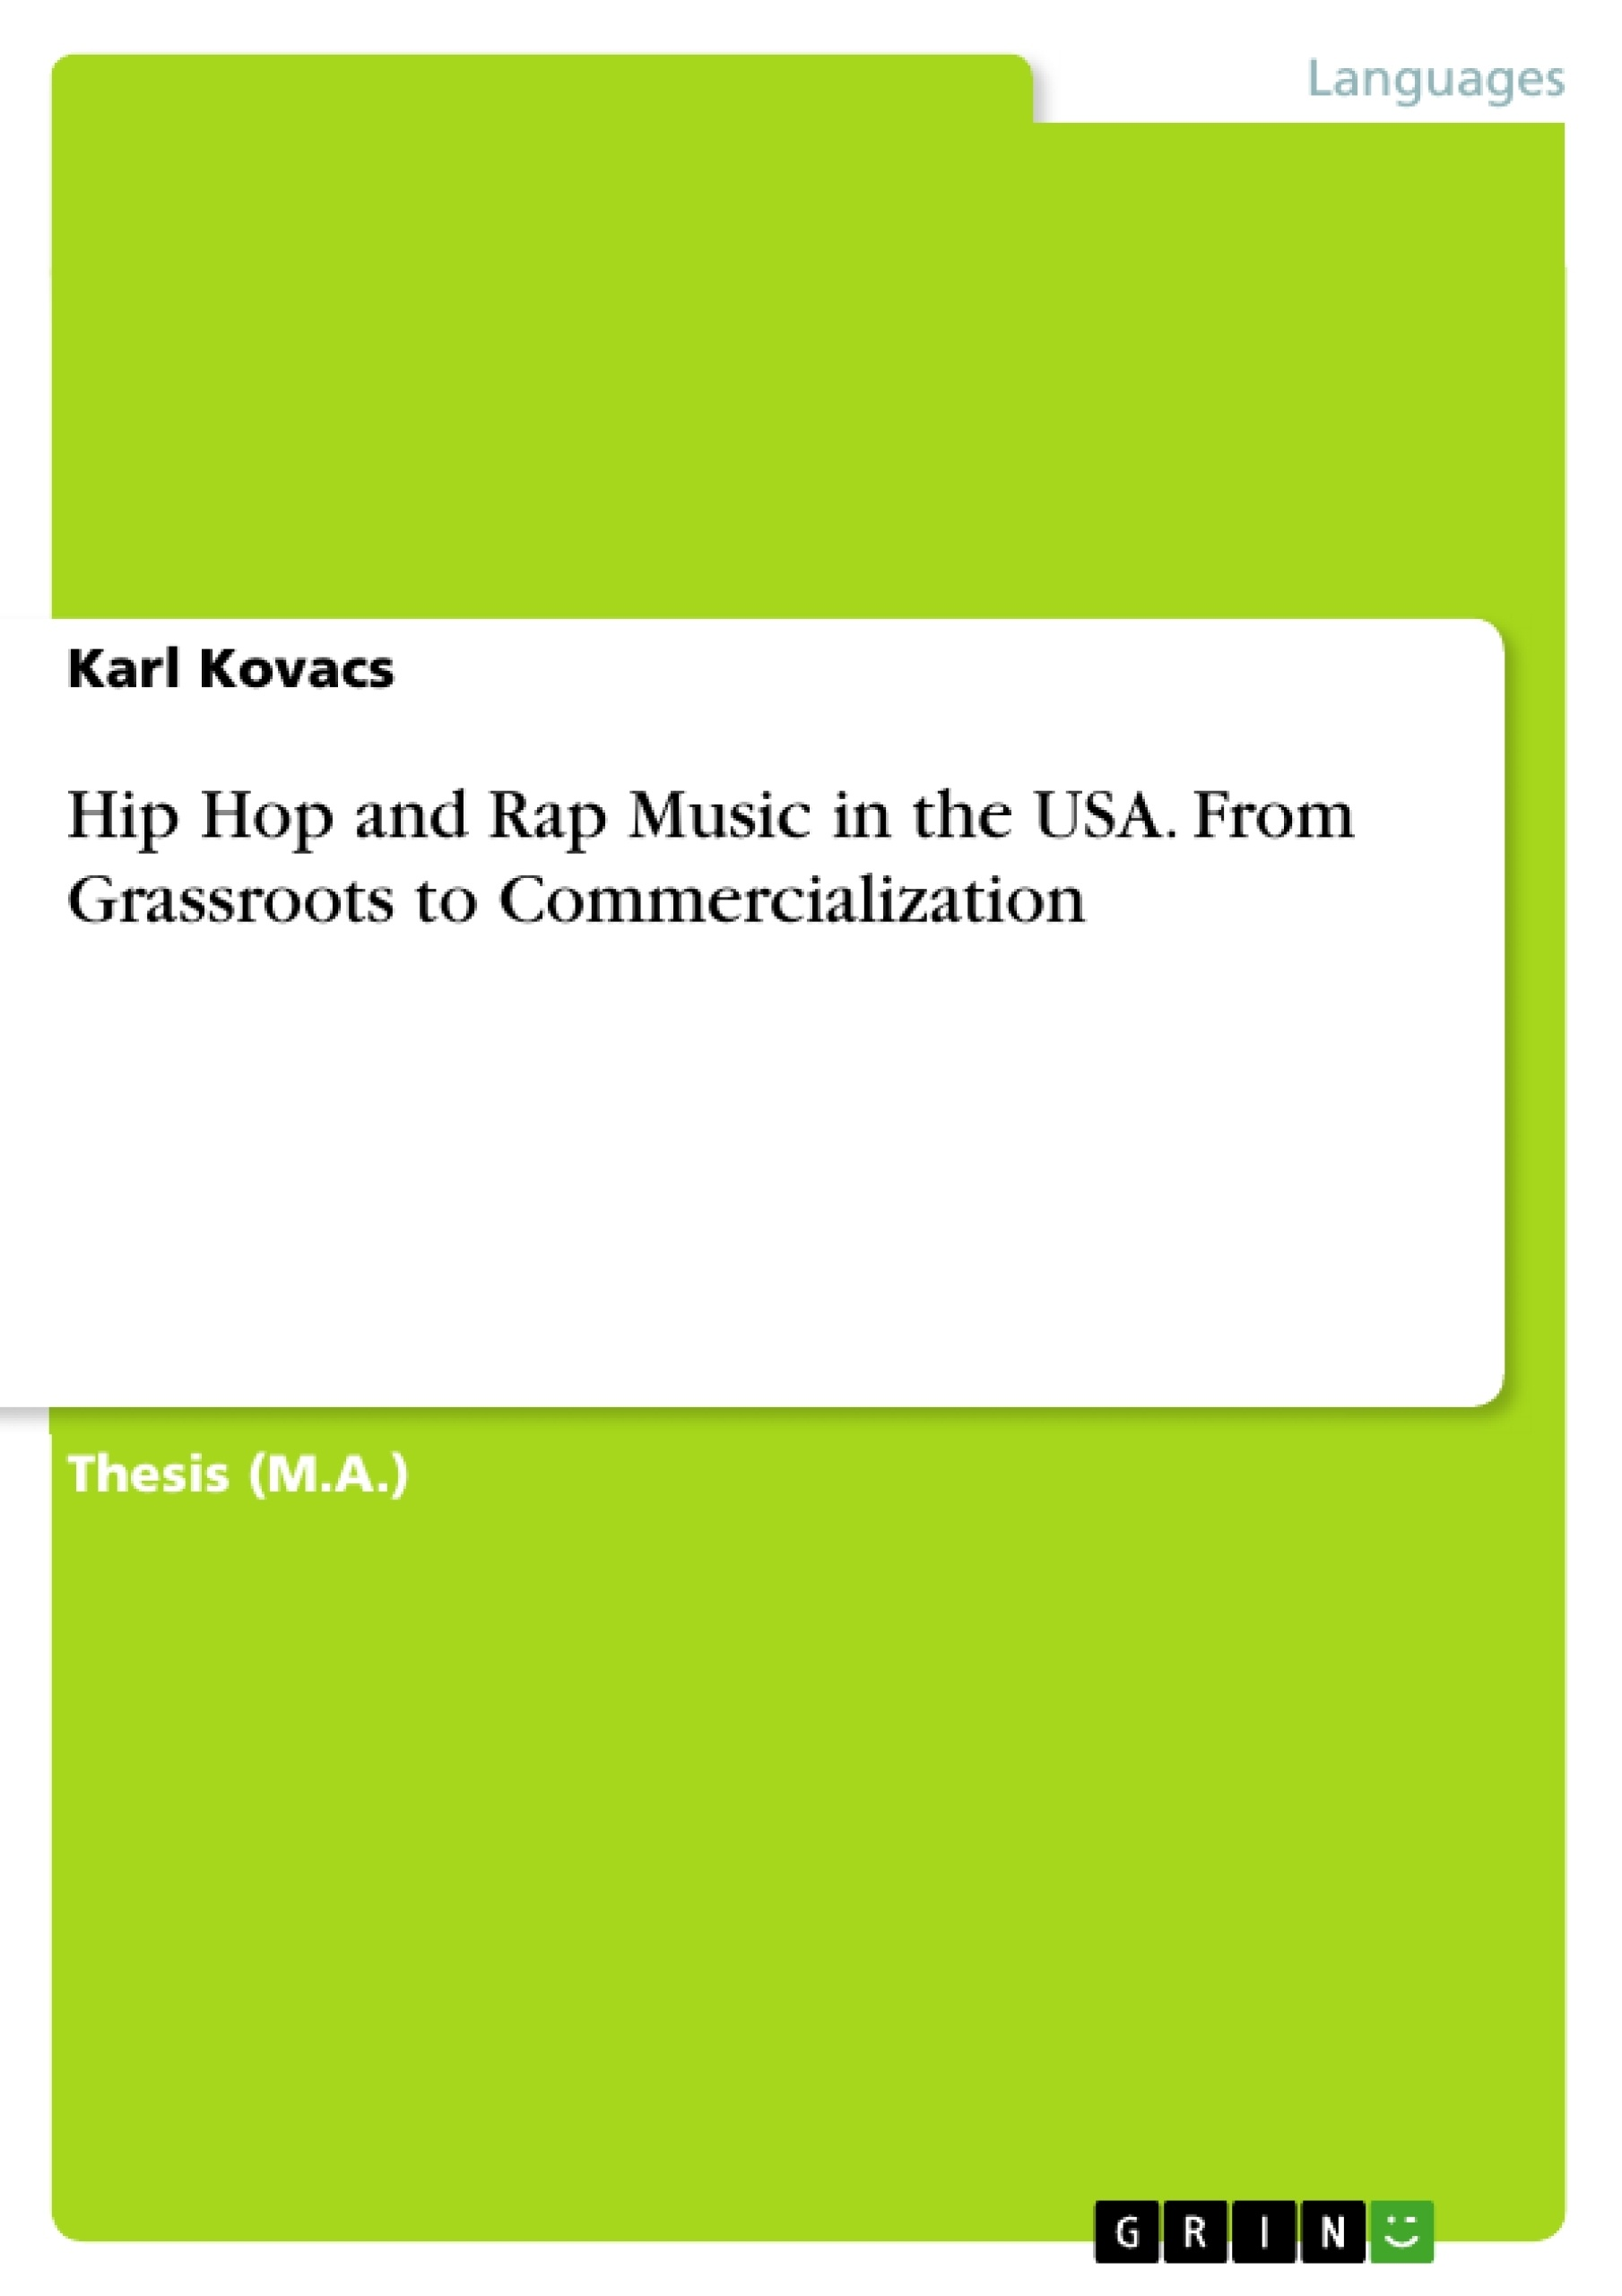 hip hop and rap music in the usa from grassroots to hip hop and rap music in the usa from grassroots to commercialization publish your master s thesis bachelor s thesis essay or term paper